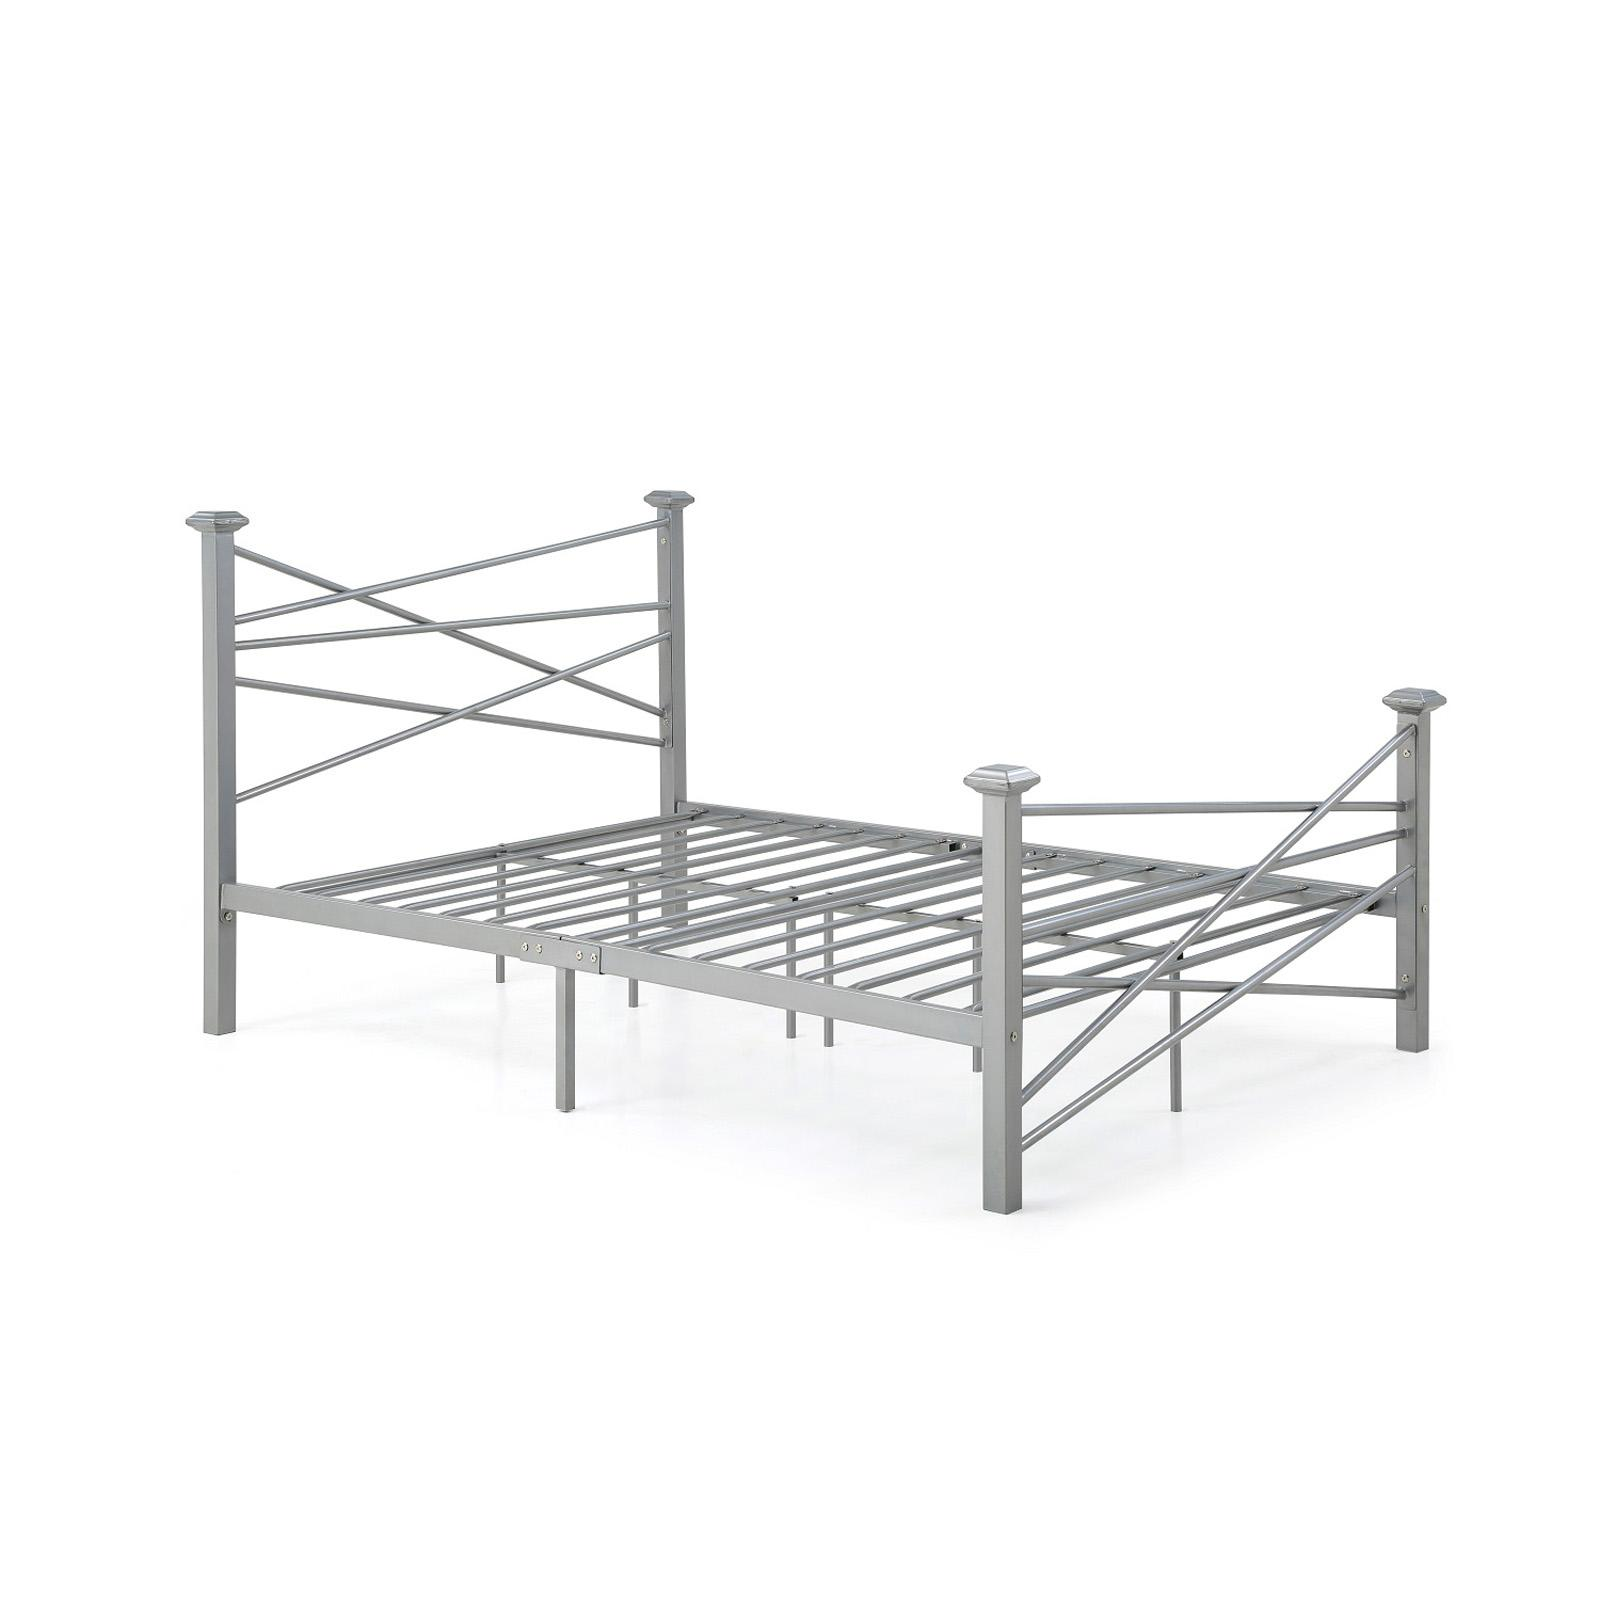 Hodedah Imports Geometric Metal Poster Bed - HI925 F SILVER